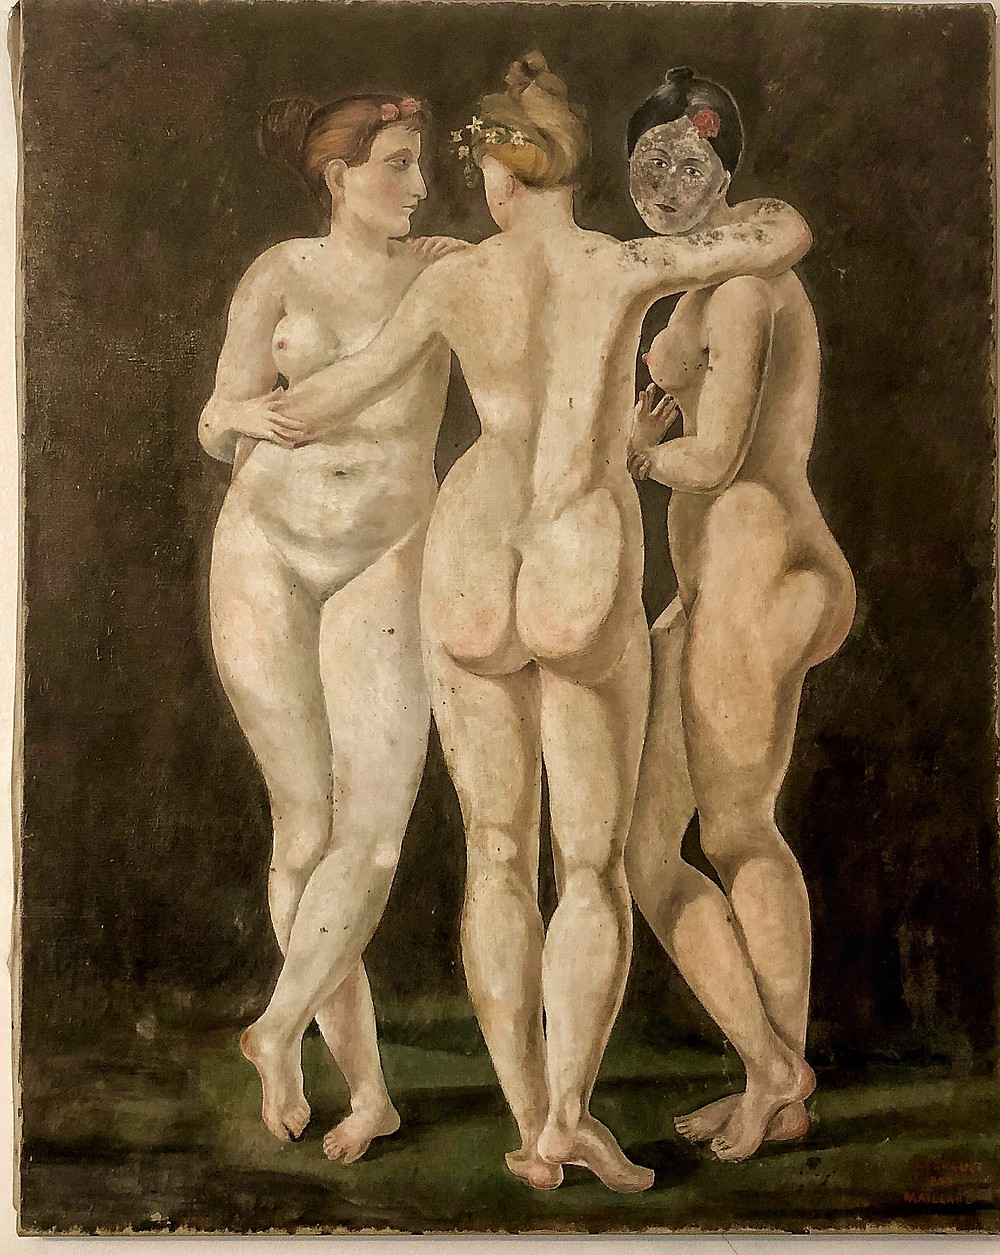 Student copy of Three Graces by Regnault in the Louvre